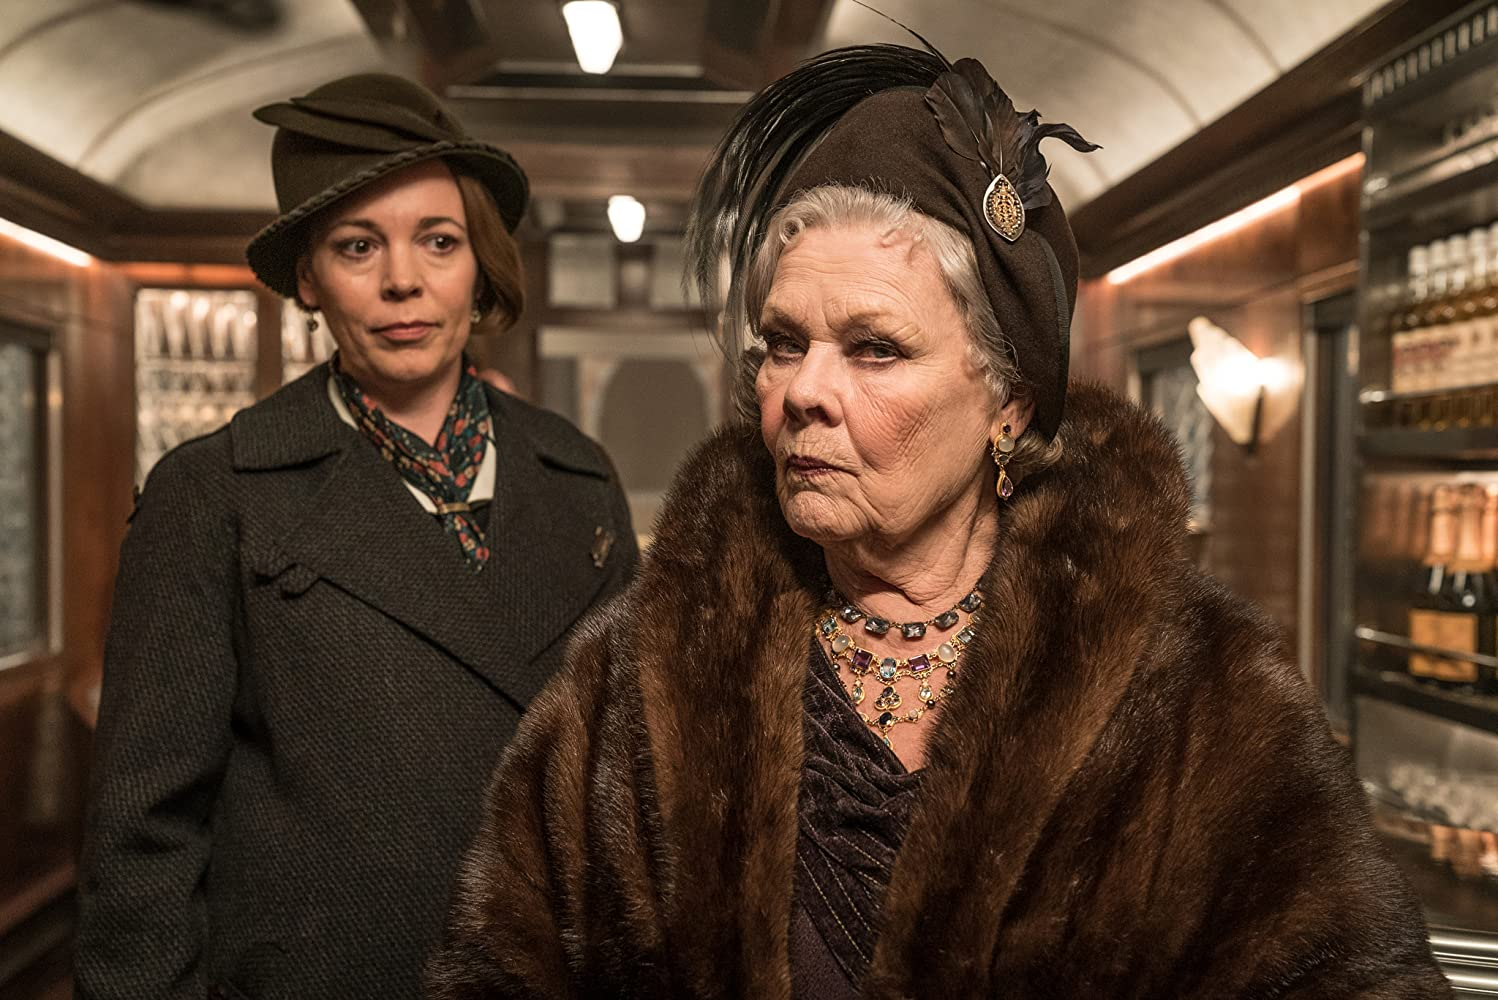 Judi Dench and Olivia Colman in Murder on the Orient Express (2017)